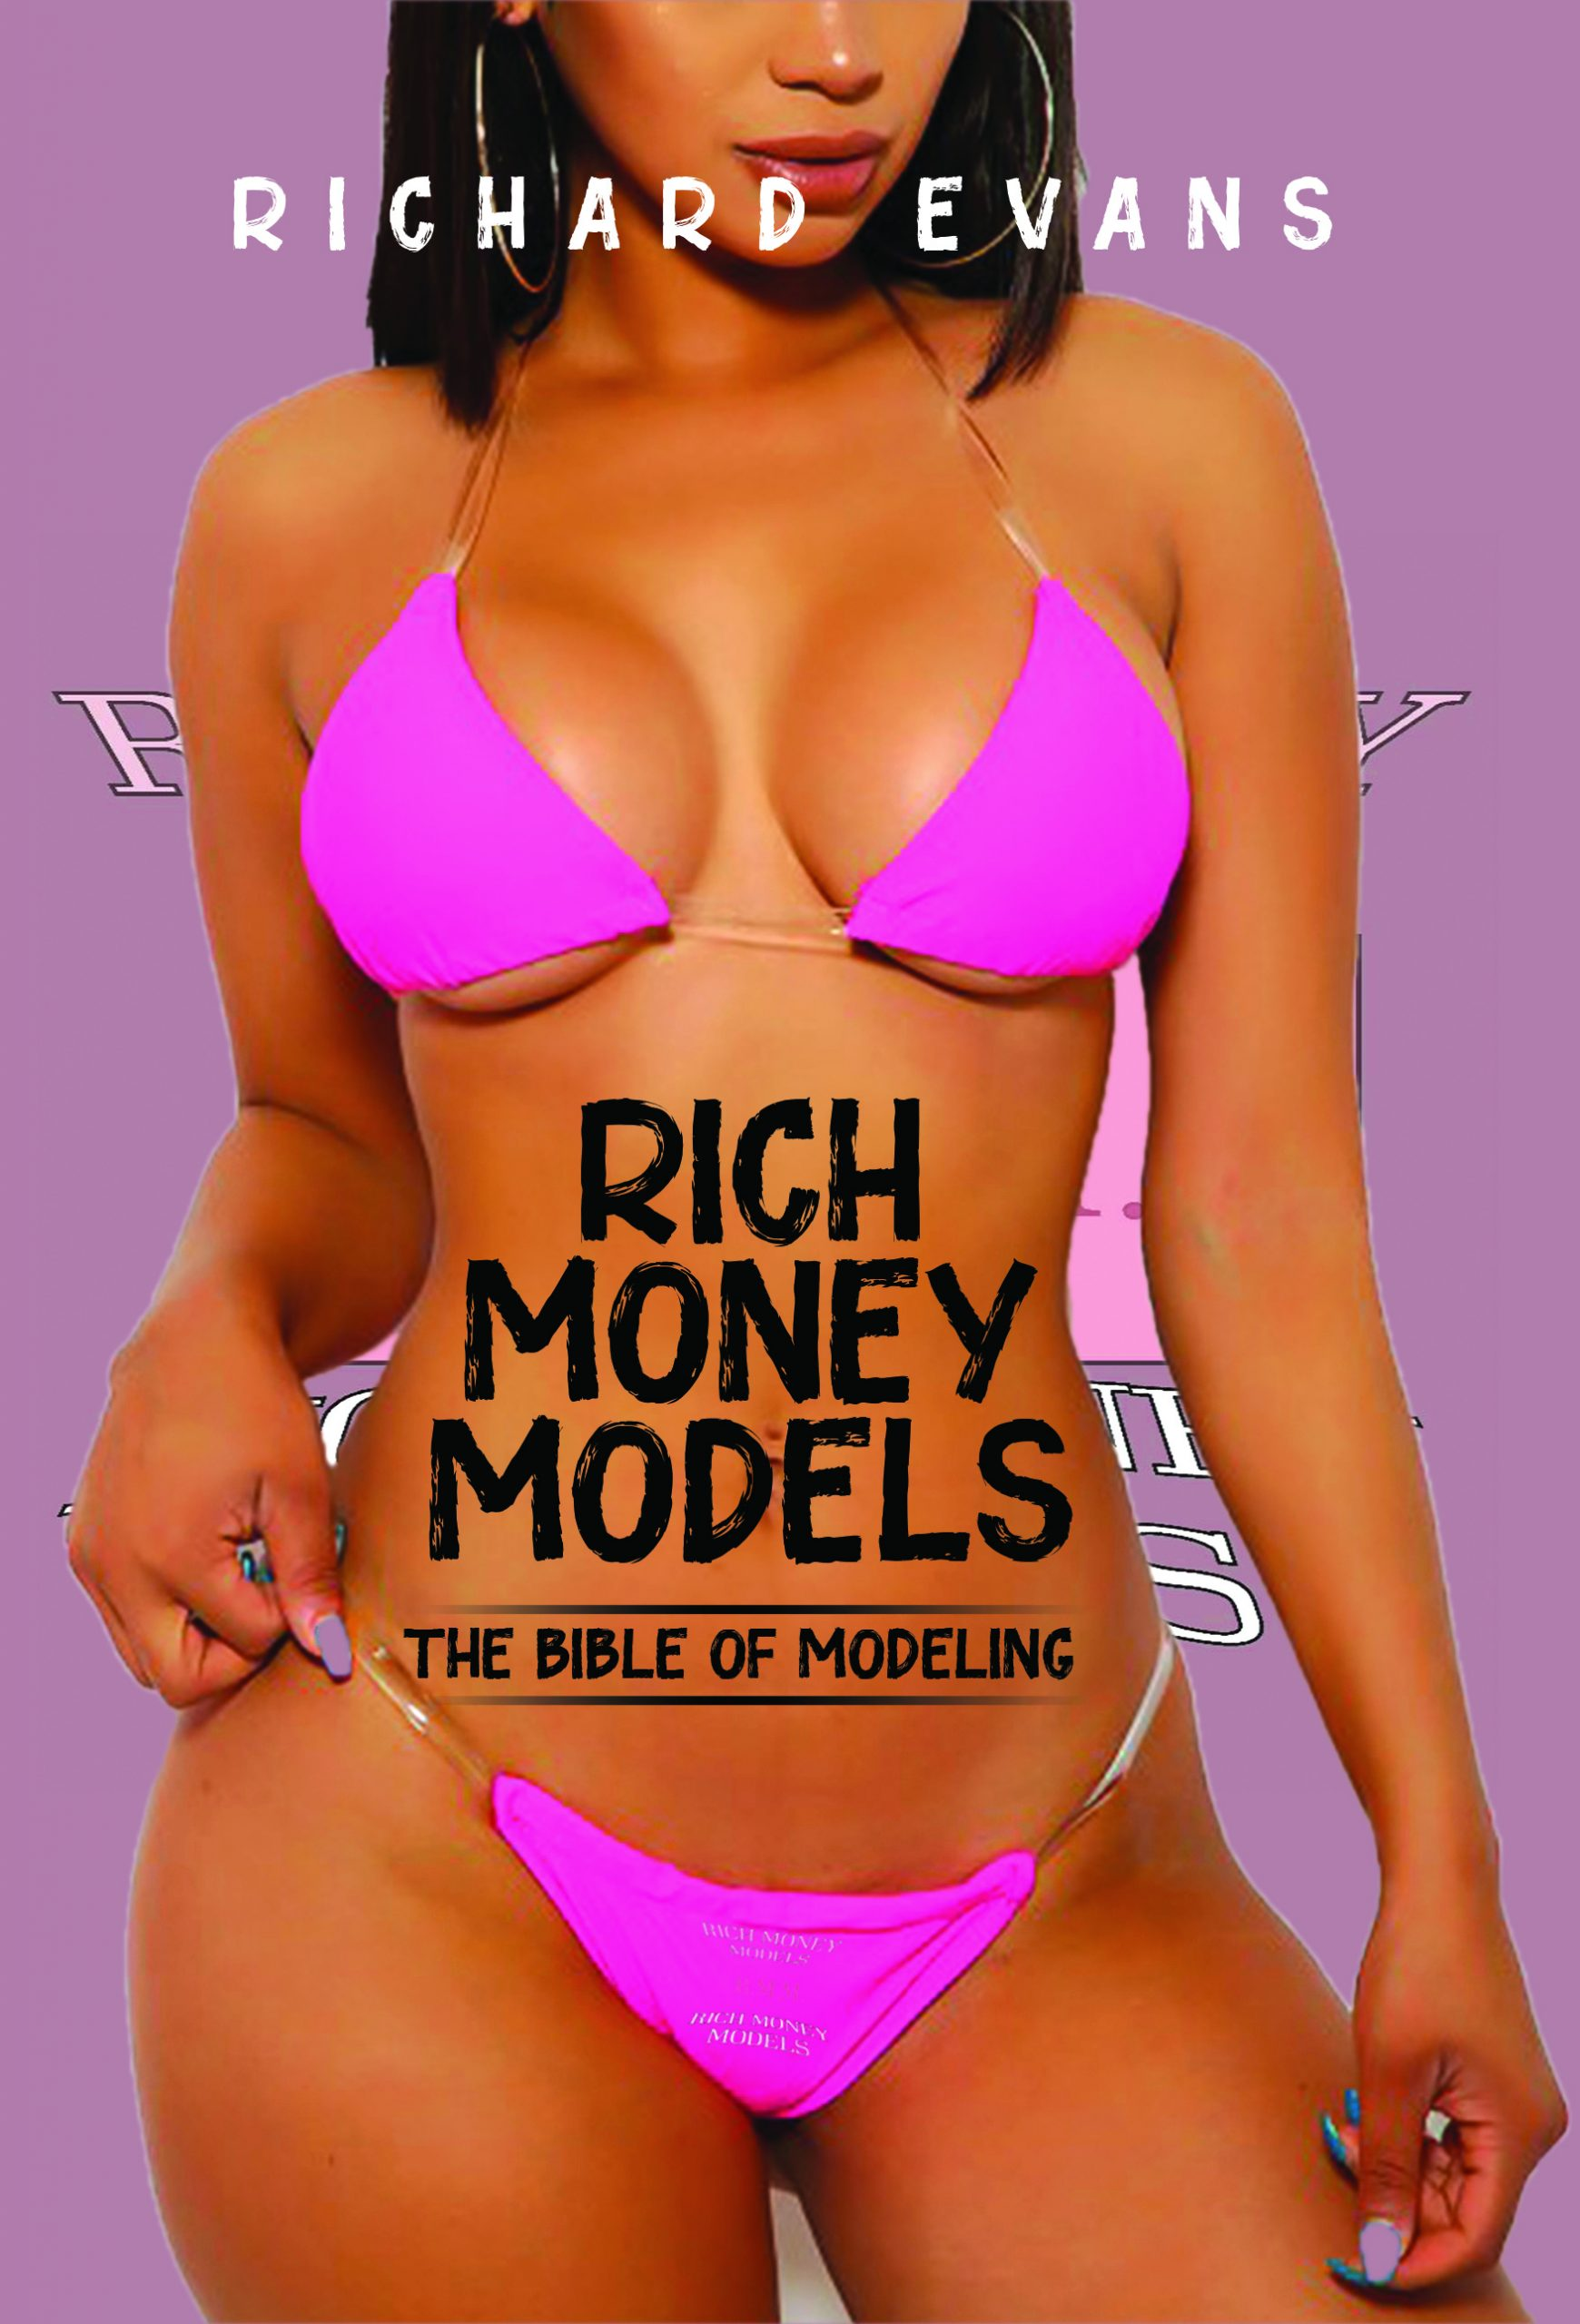 Rich Money Models by Richard Evans